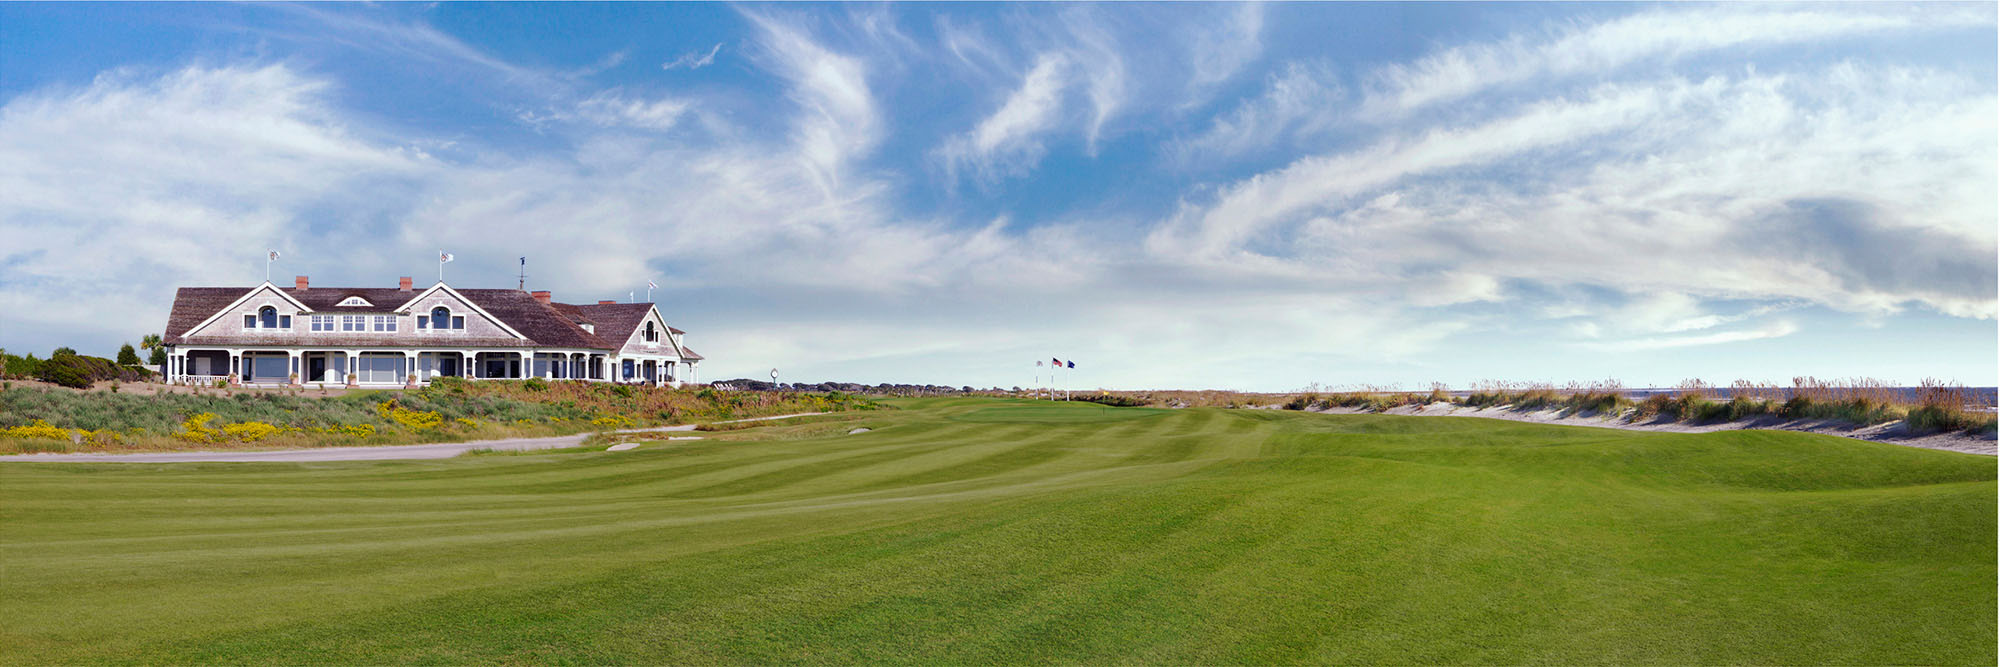 Golf Course Image - Kiawah Ocean Course No. 18